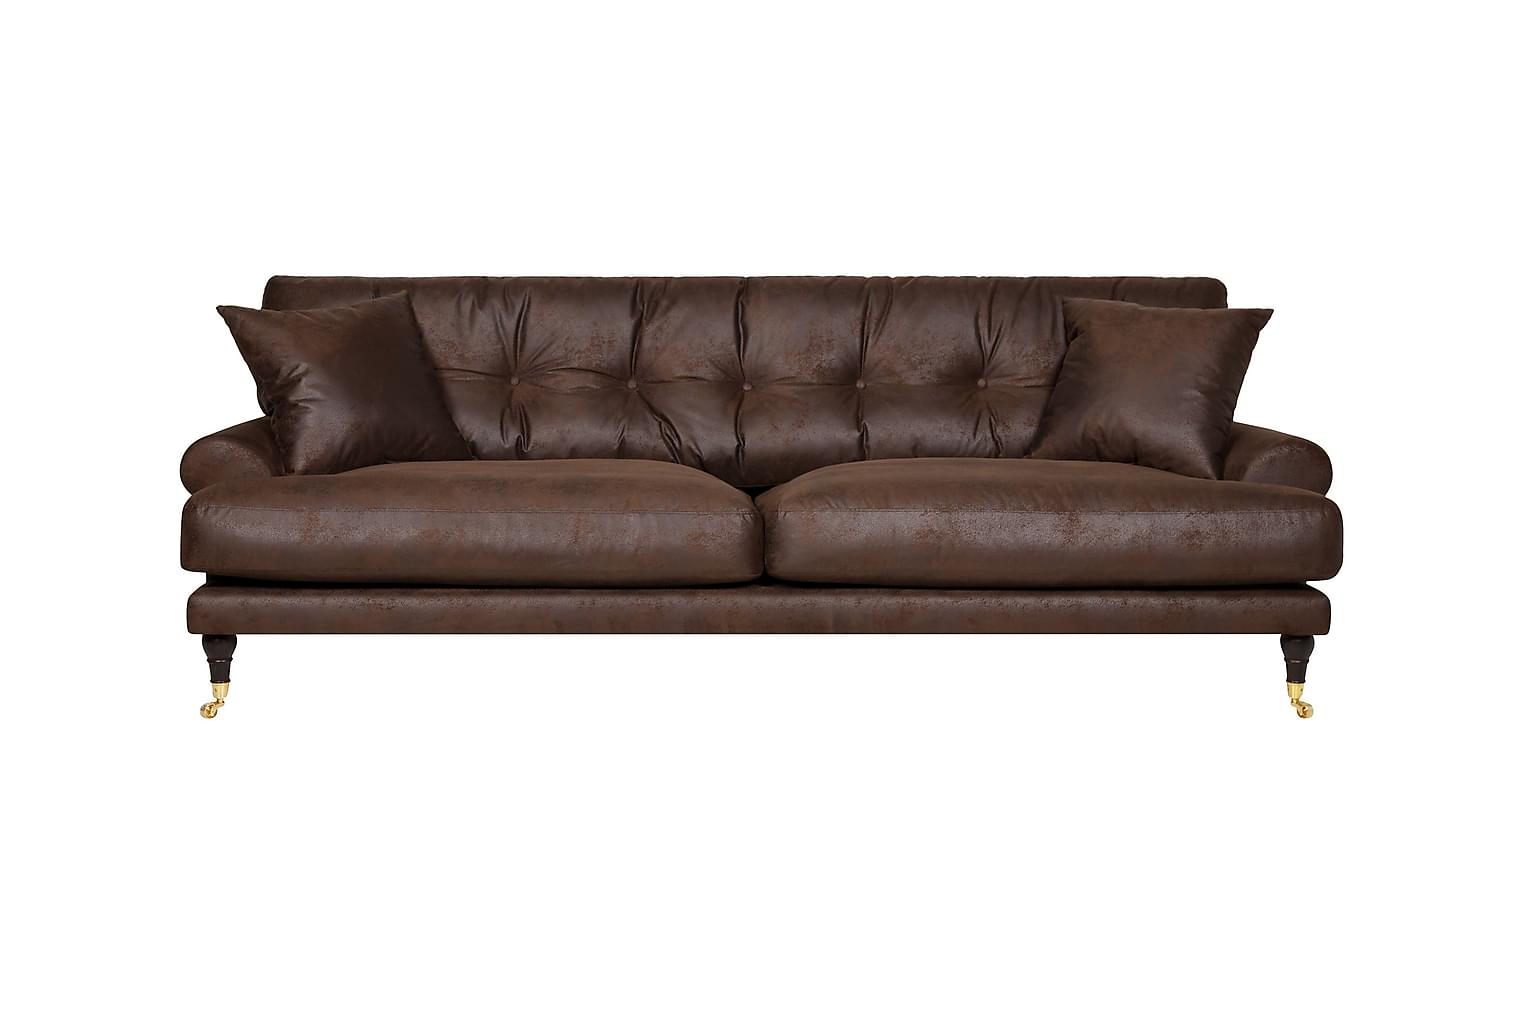 Andy ANDY 3-sits Soffa Antikbrun -